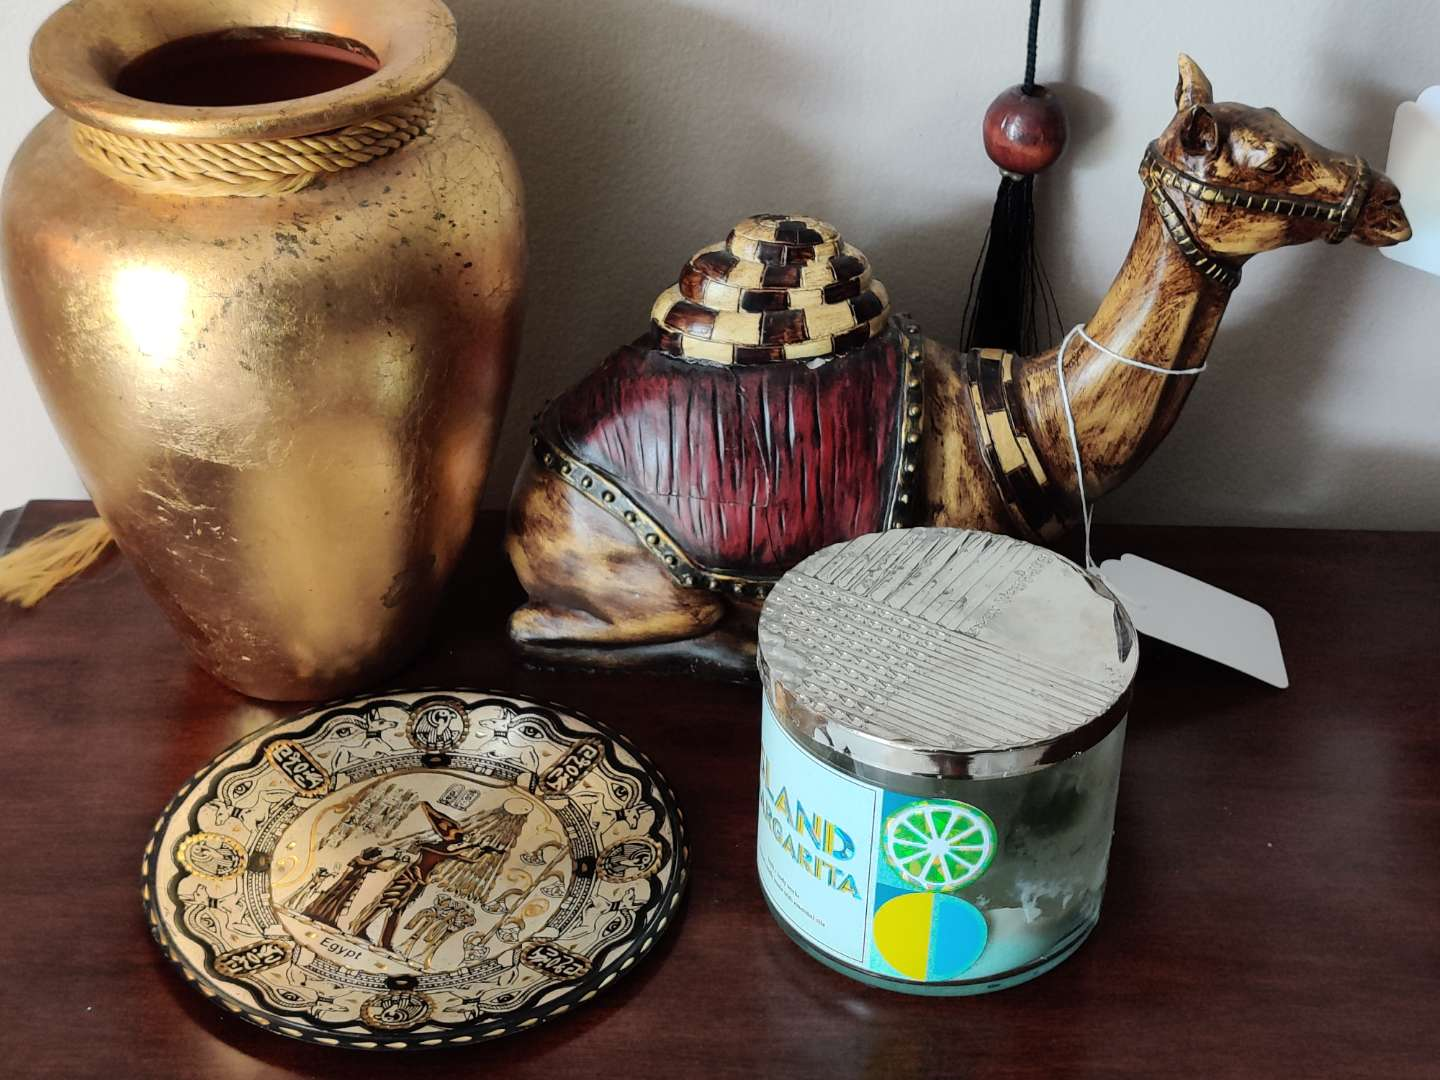 229 lot of four pieces metal plate candle vase and damaged camel missing foot